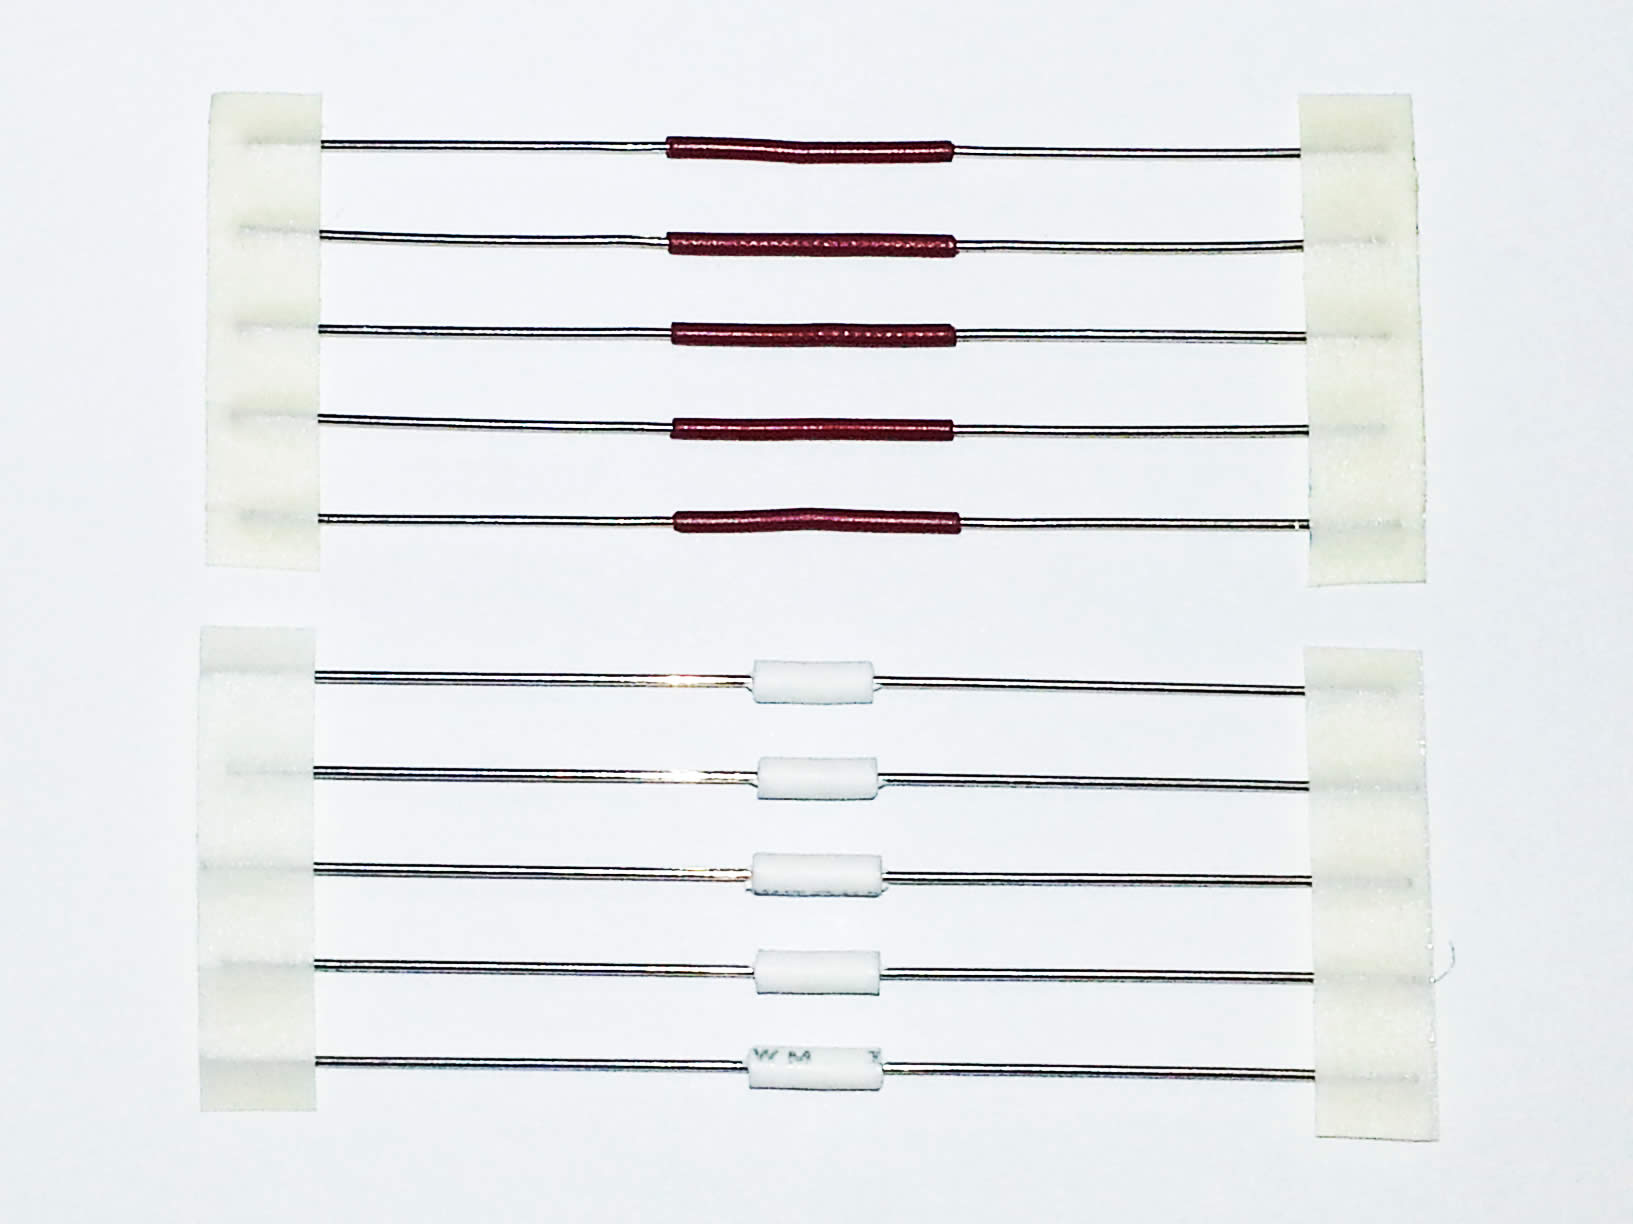 Surface Mount Jumper Wire